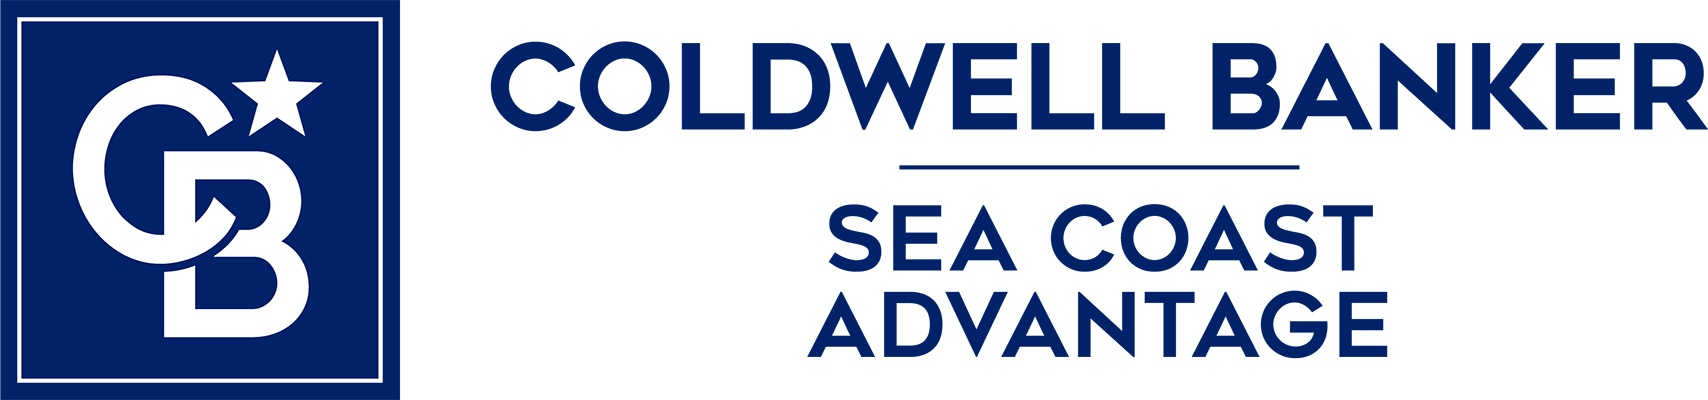 Sunng Hursey - Coldwell Banker Sea Coast Advantage Realty